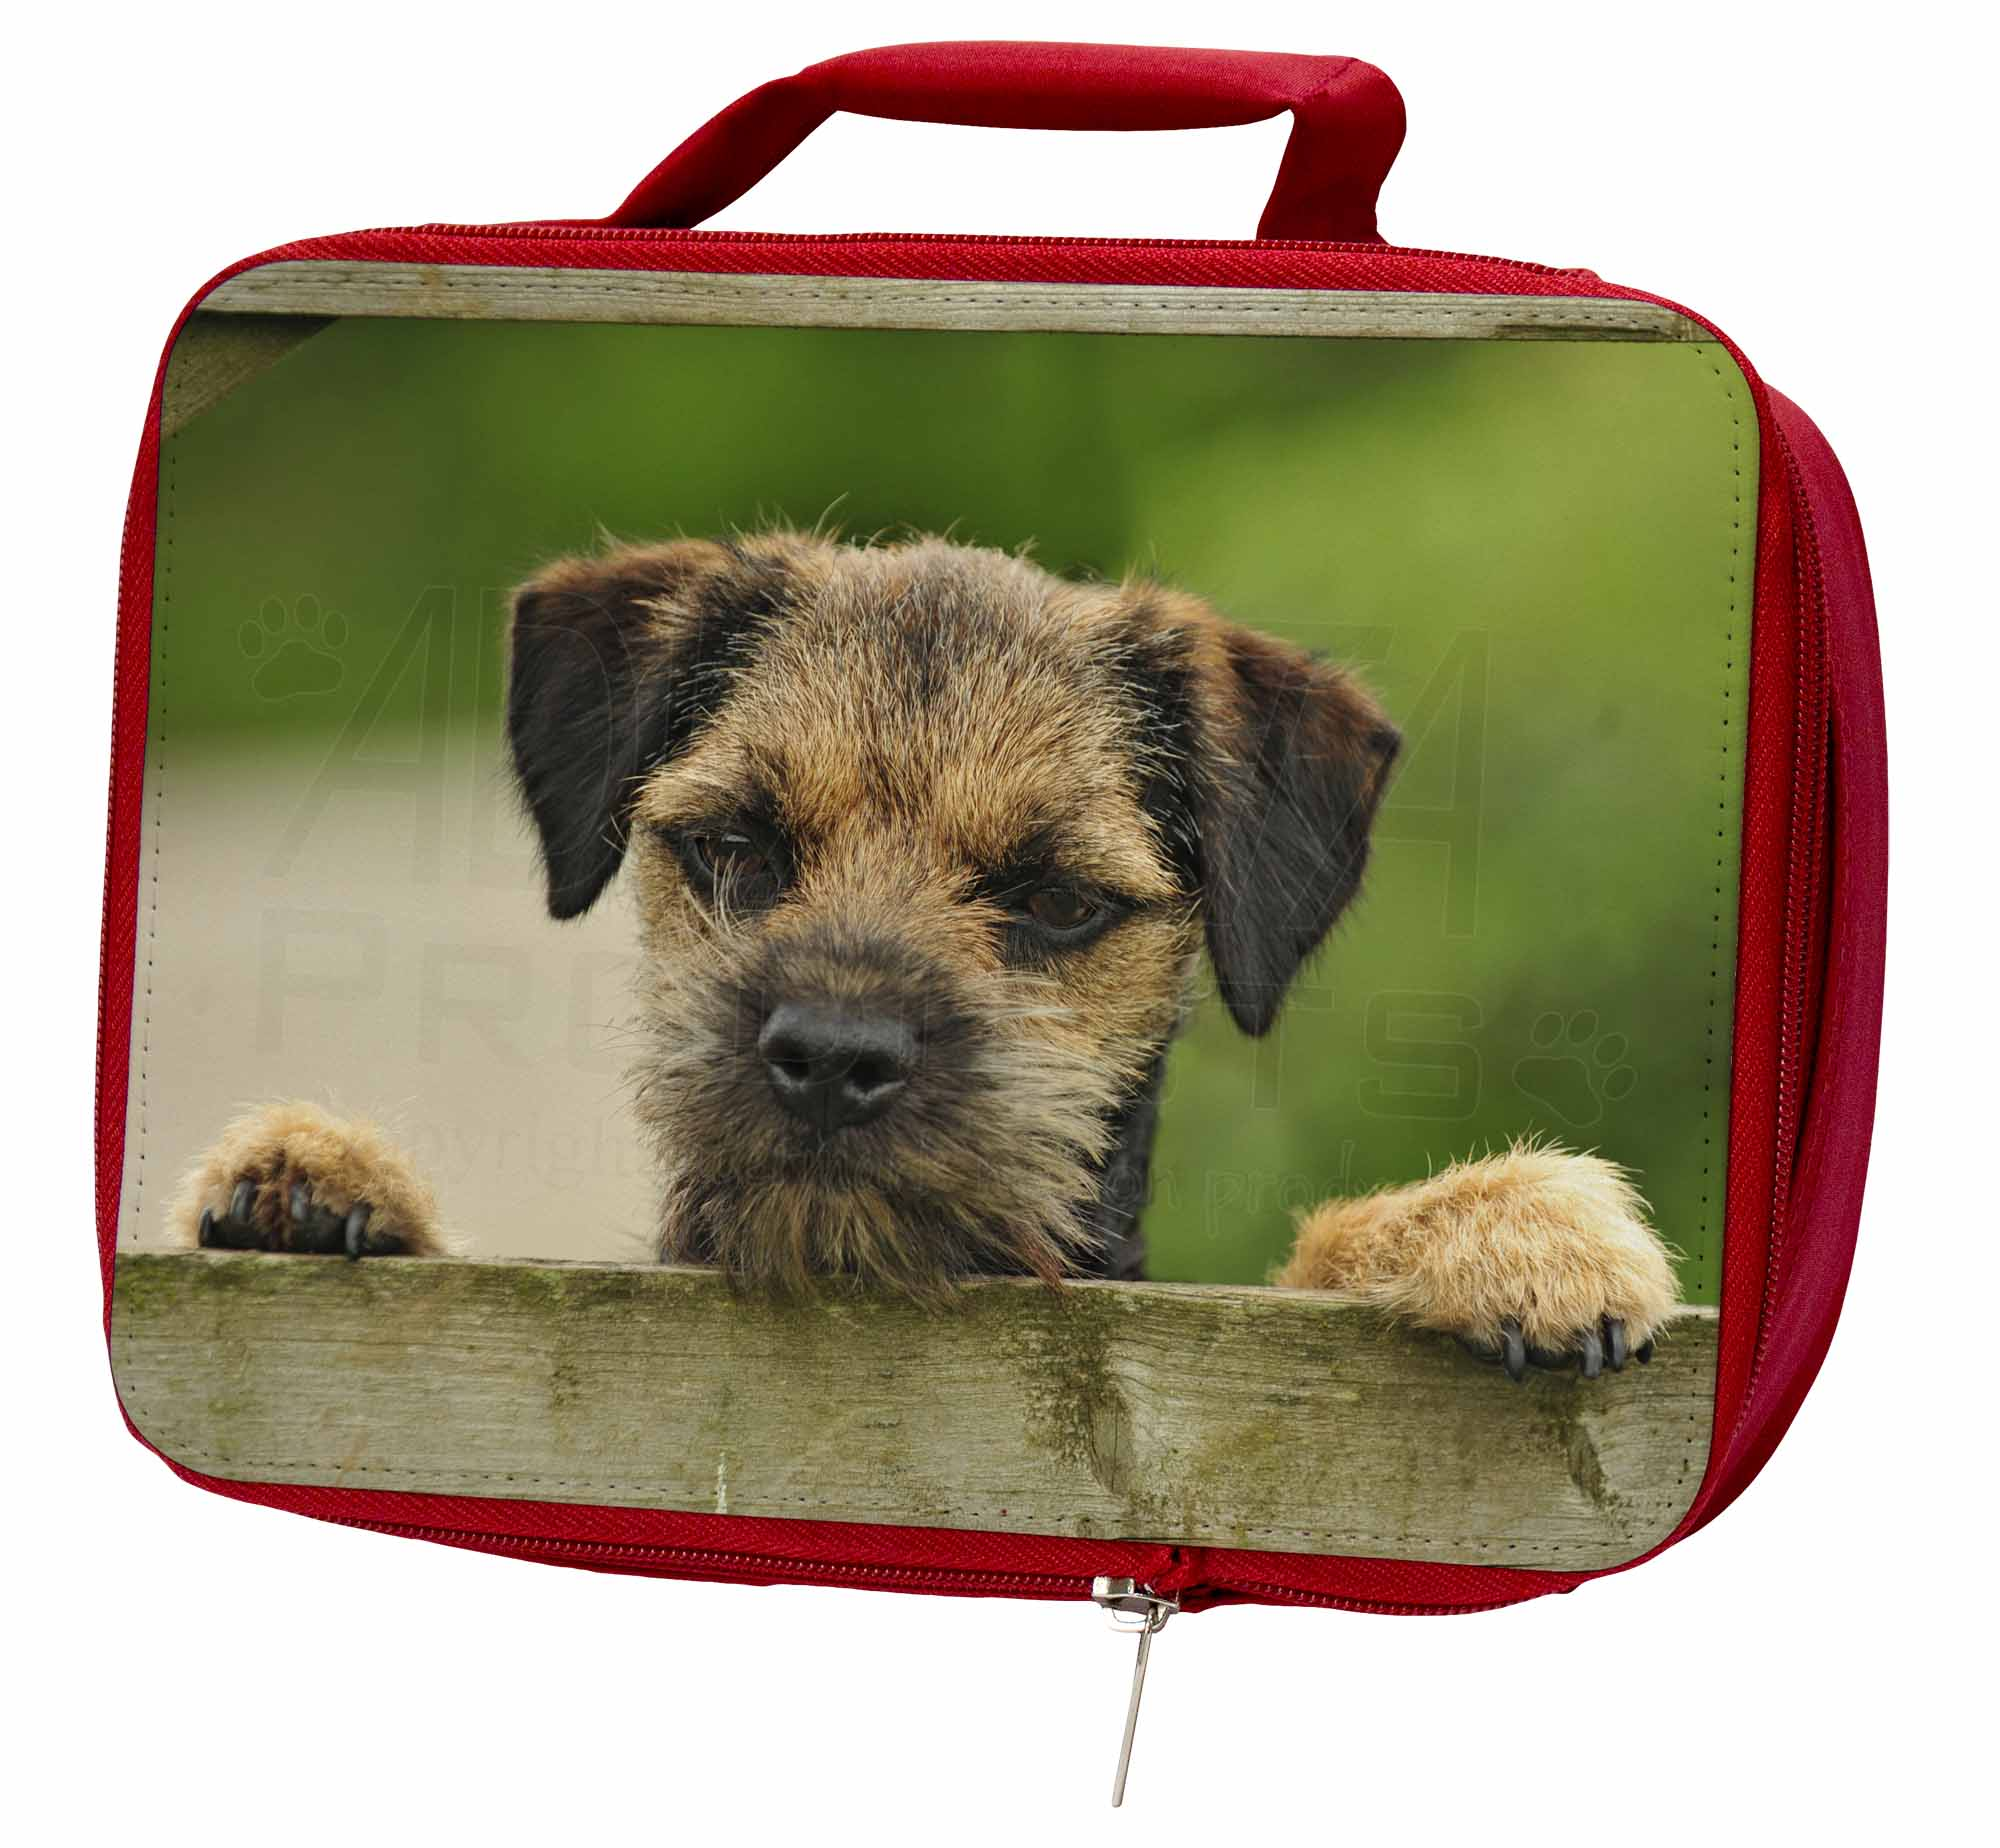 AD-BT5LBR Border Terrier Puppy Dog Insulated Red School Lunch Box//Picnic Bag